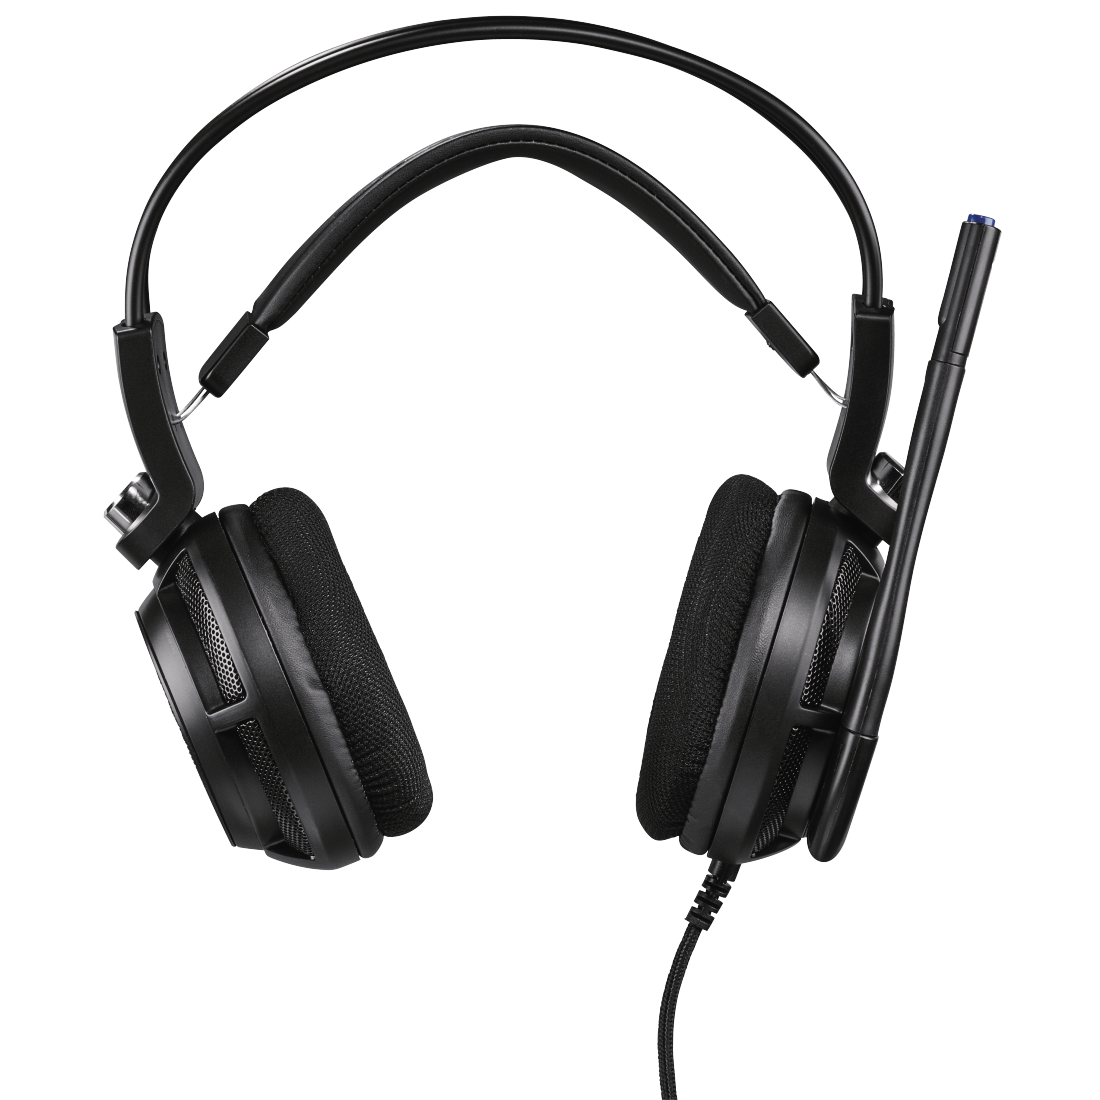 abx2 High-Res Image 2 - Hama, uRage SoundZ 7.1 Gaming Headset, black